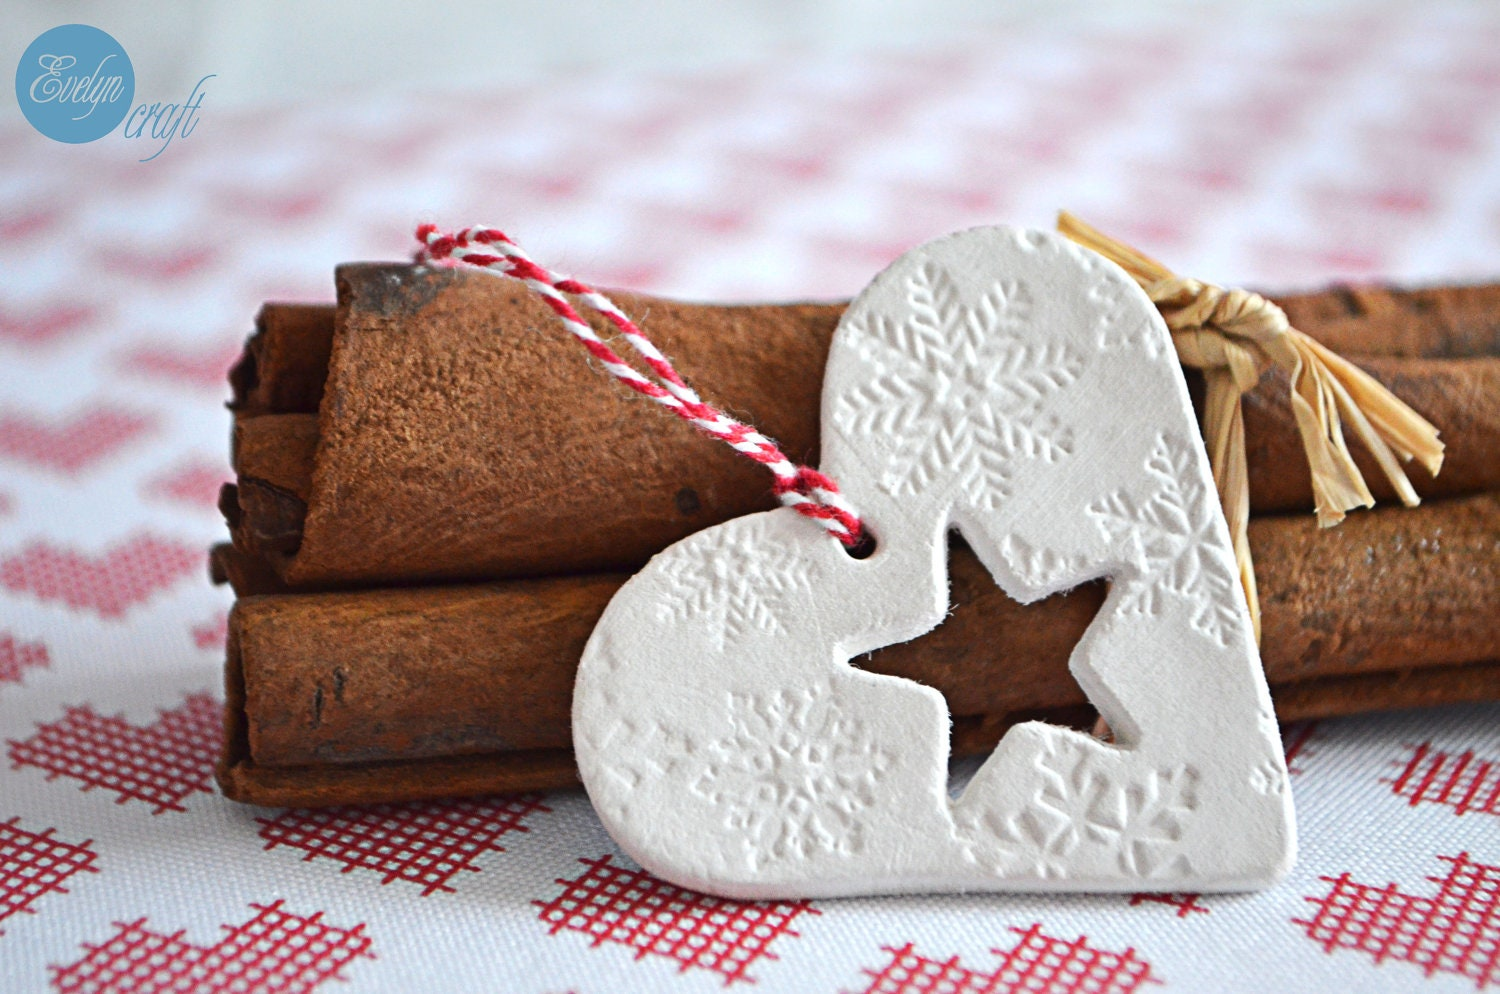 Christmas decoration clay small heart tags with  twine and stamps